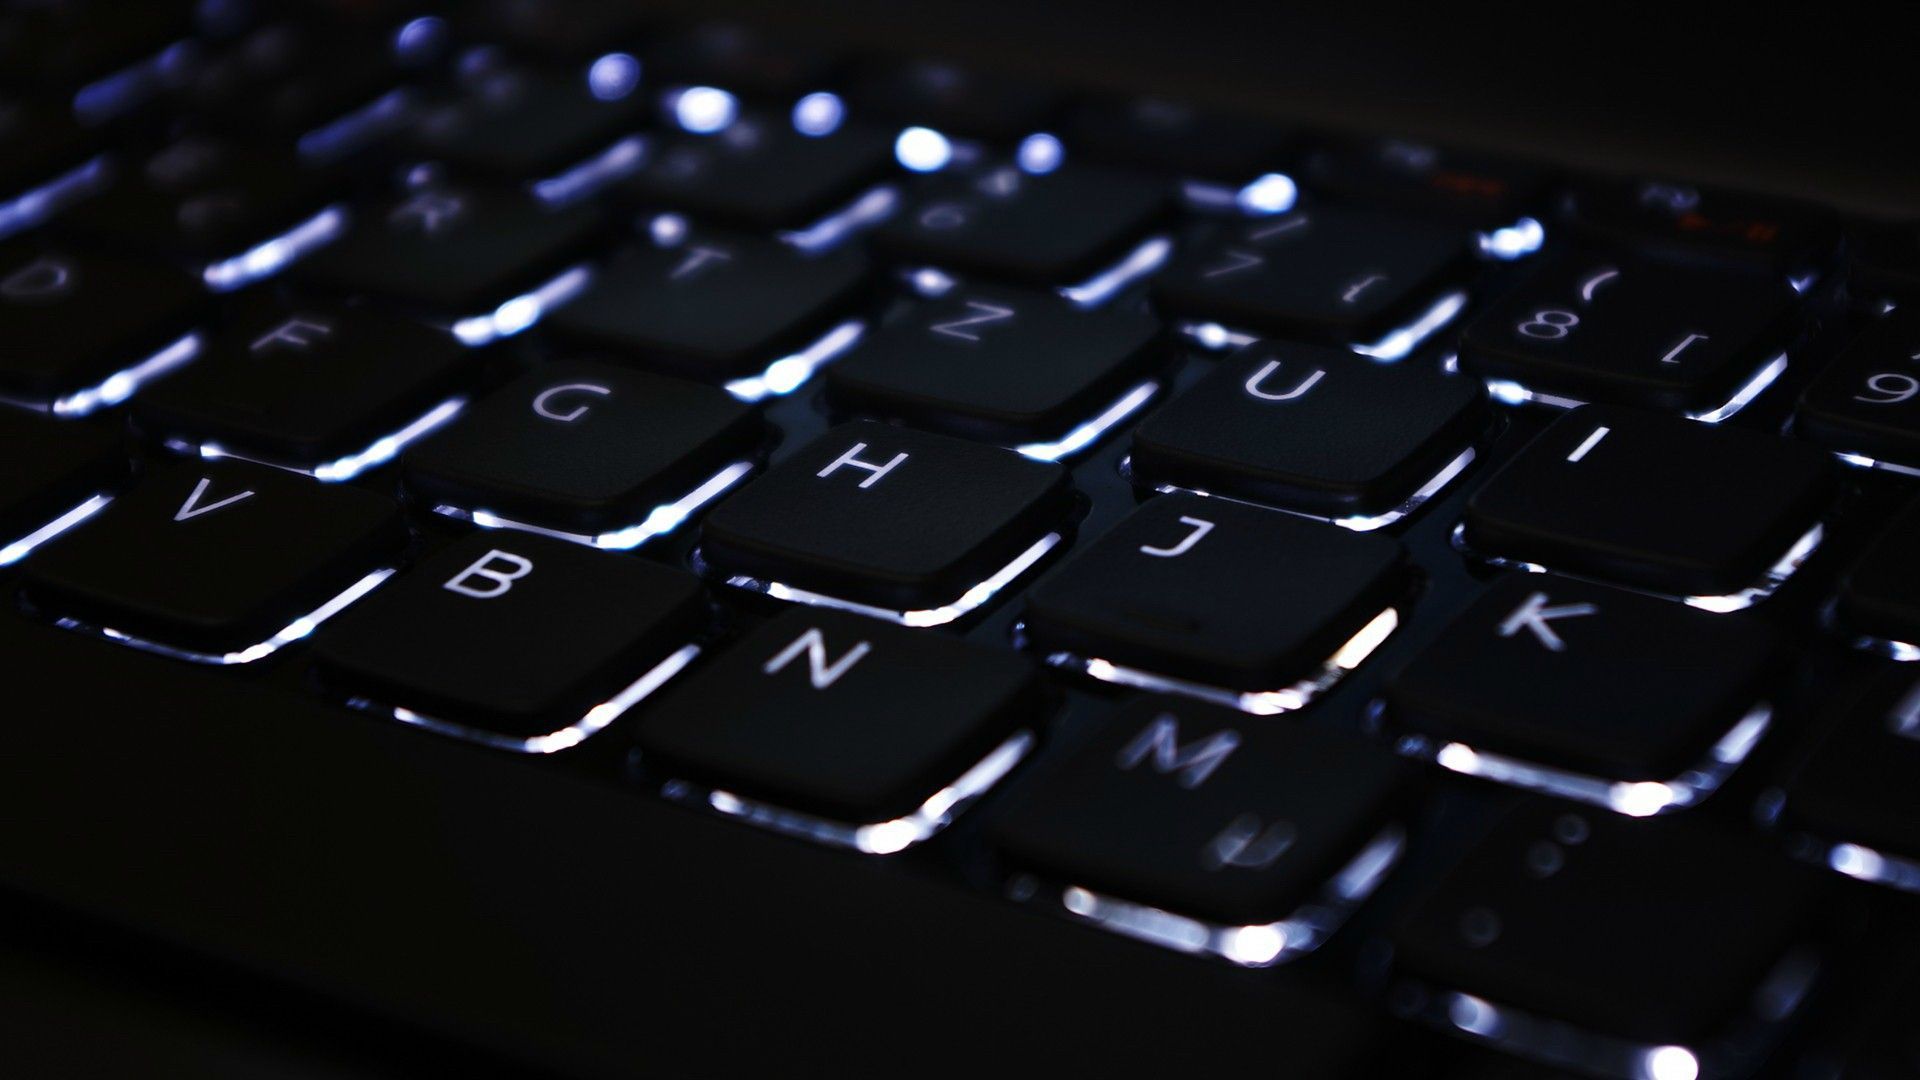 Lights Keyboard Computer Technology Image Keyboard Cute Wallpapers For Computer Full Hd Wallpaper Download